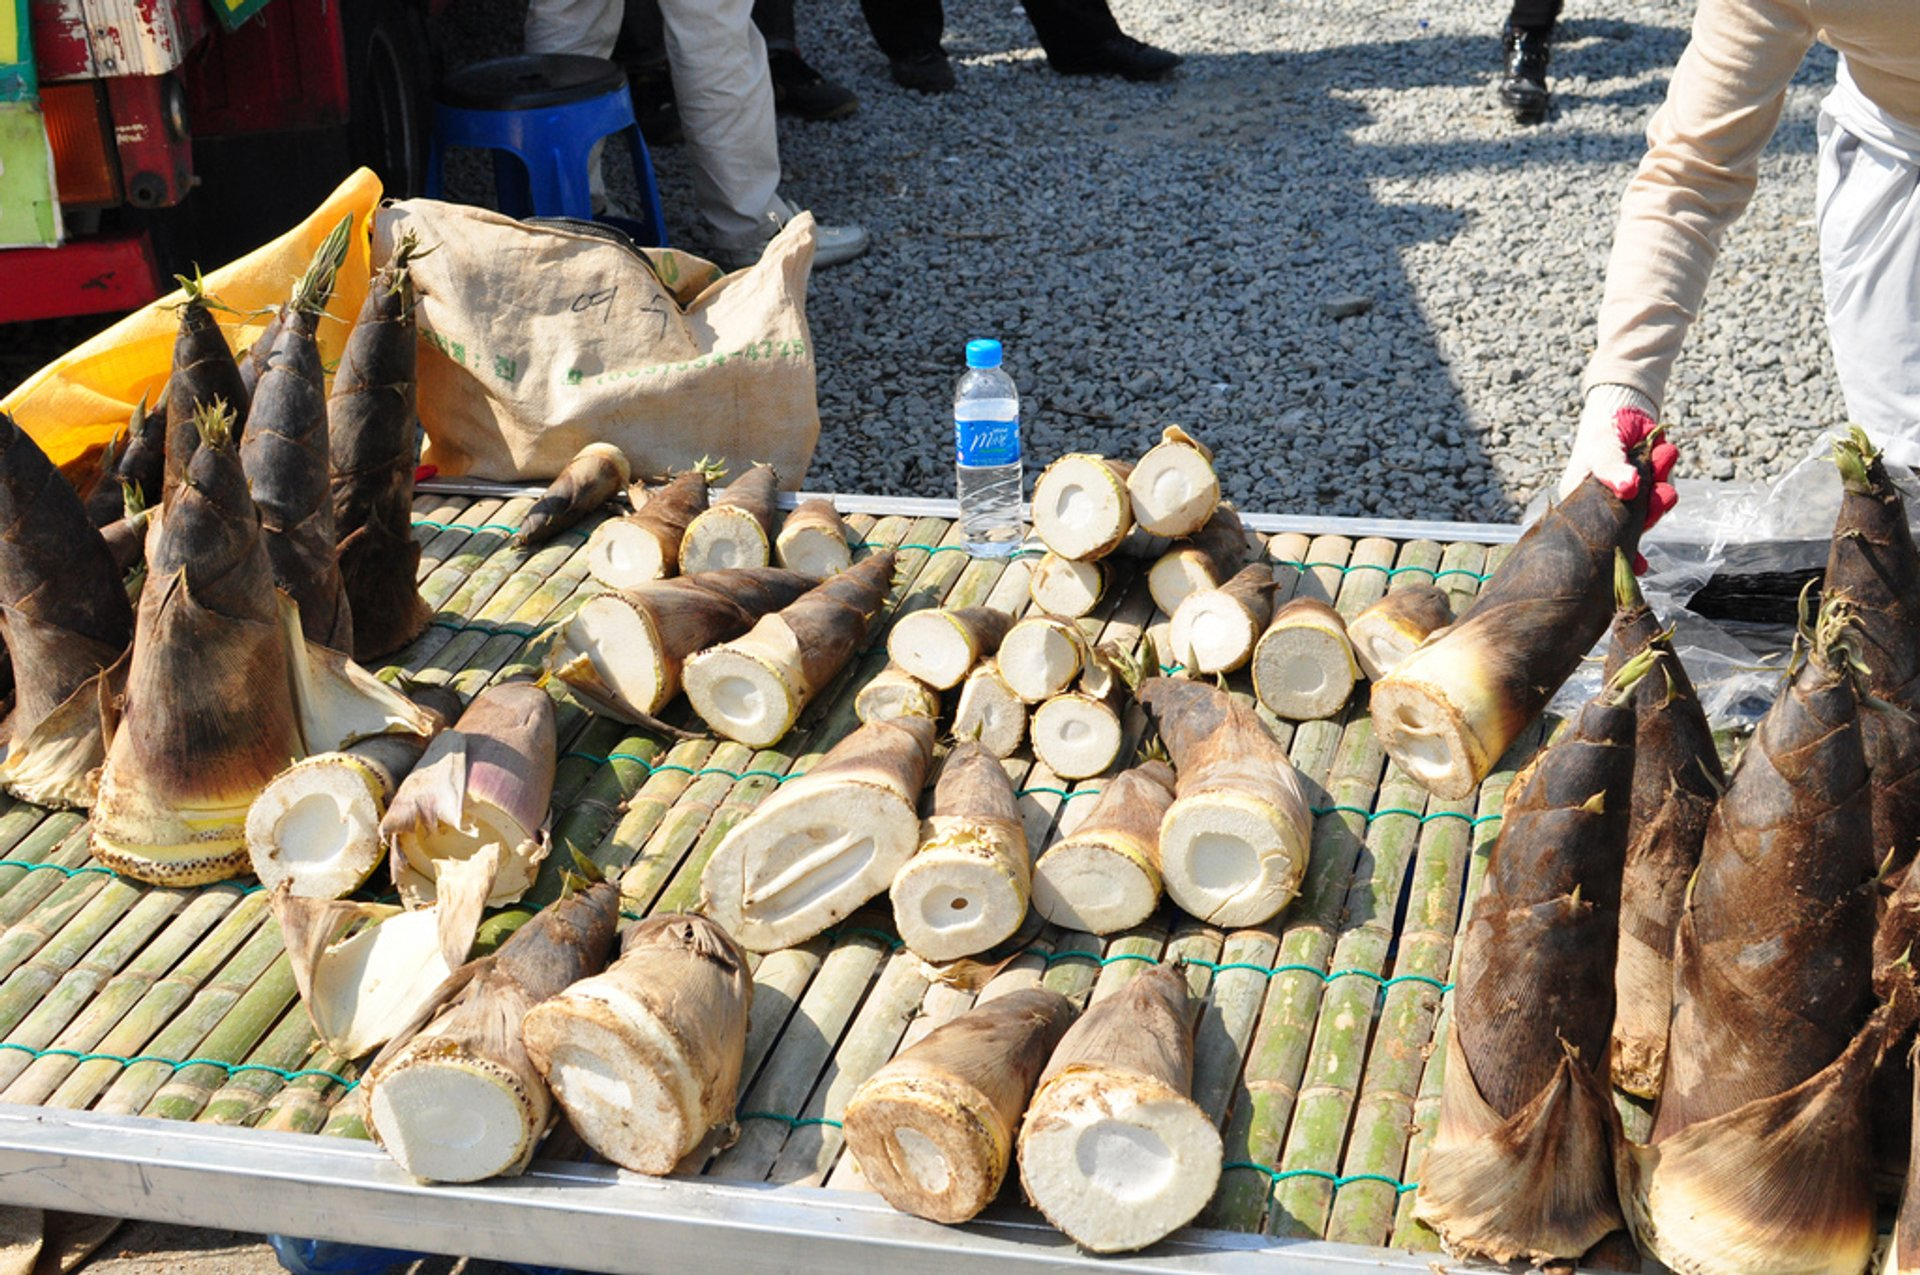 Edible bamboo shoots on sale 2020